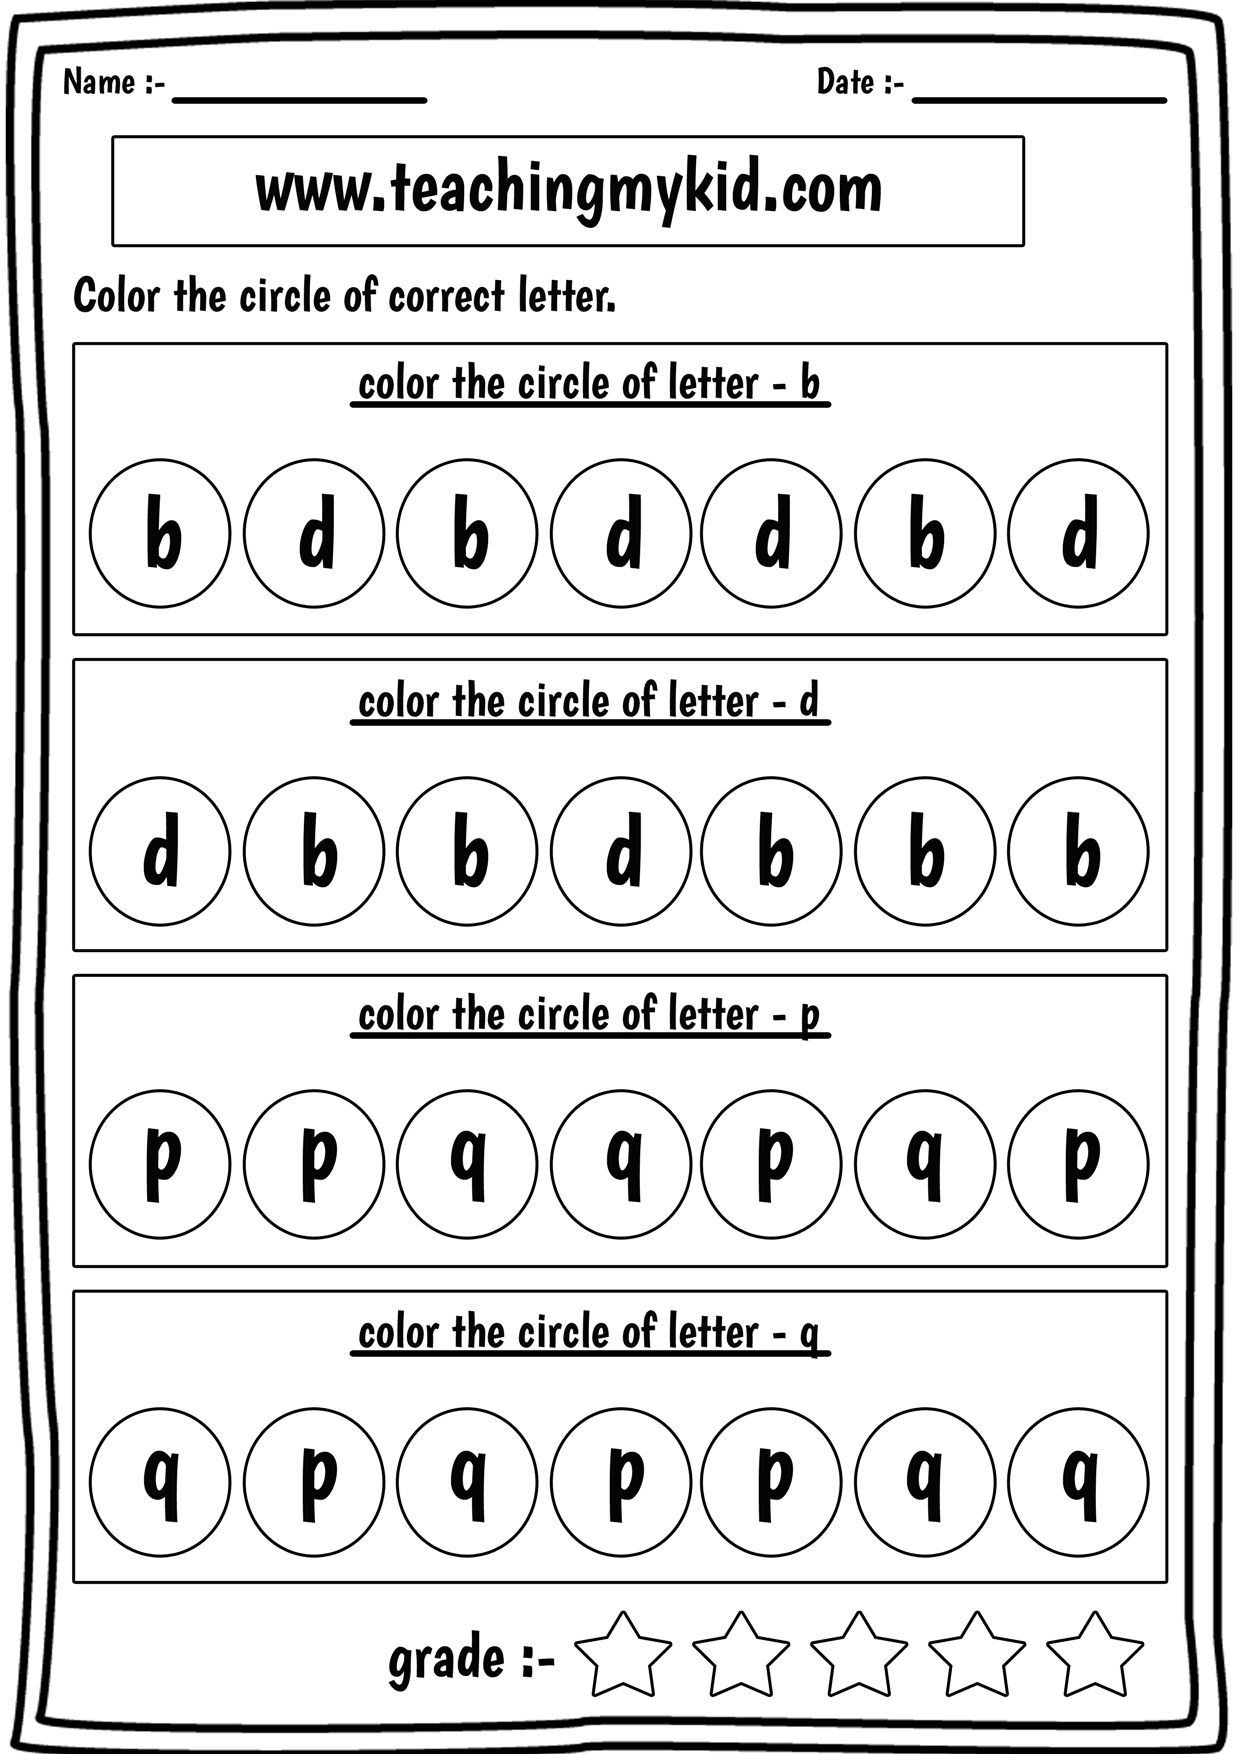 preschool printable worksheets - confusing letters b,d,p,q